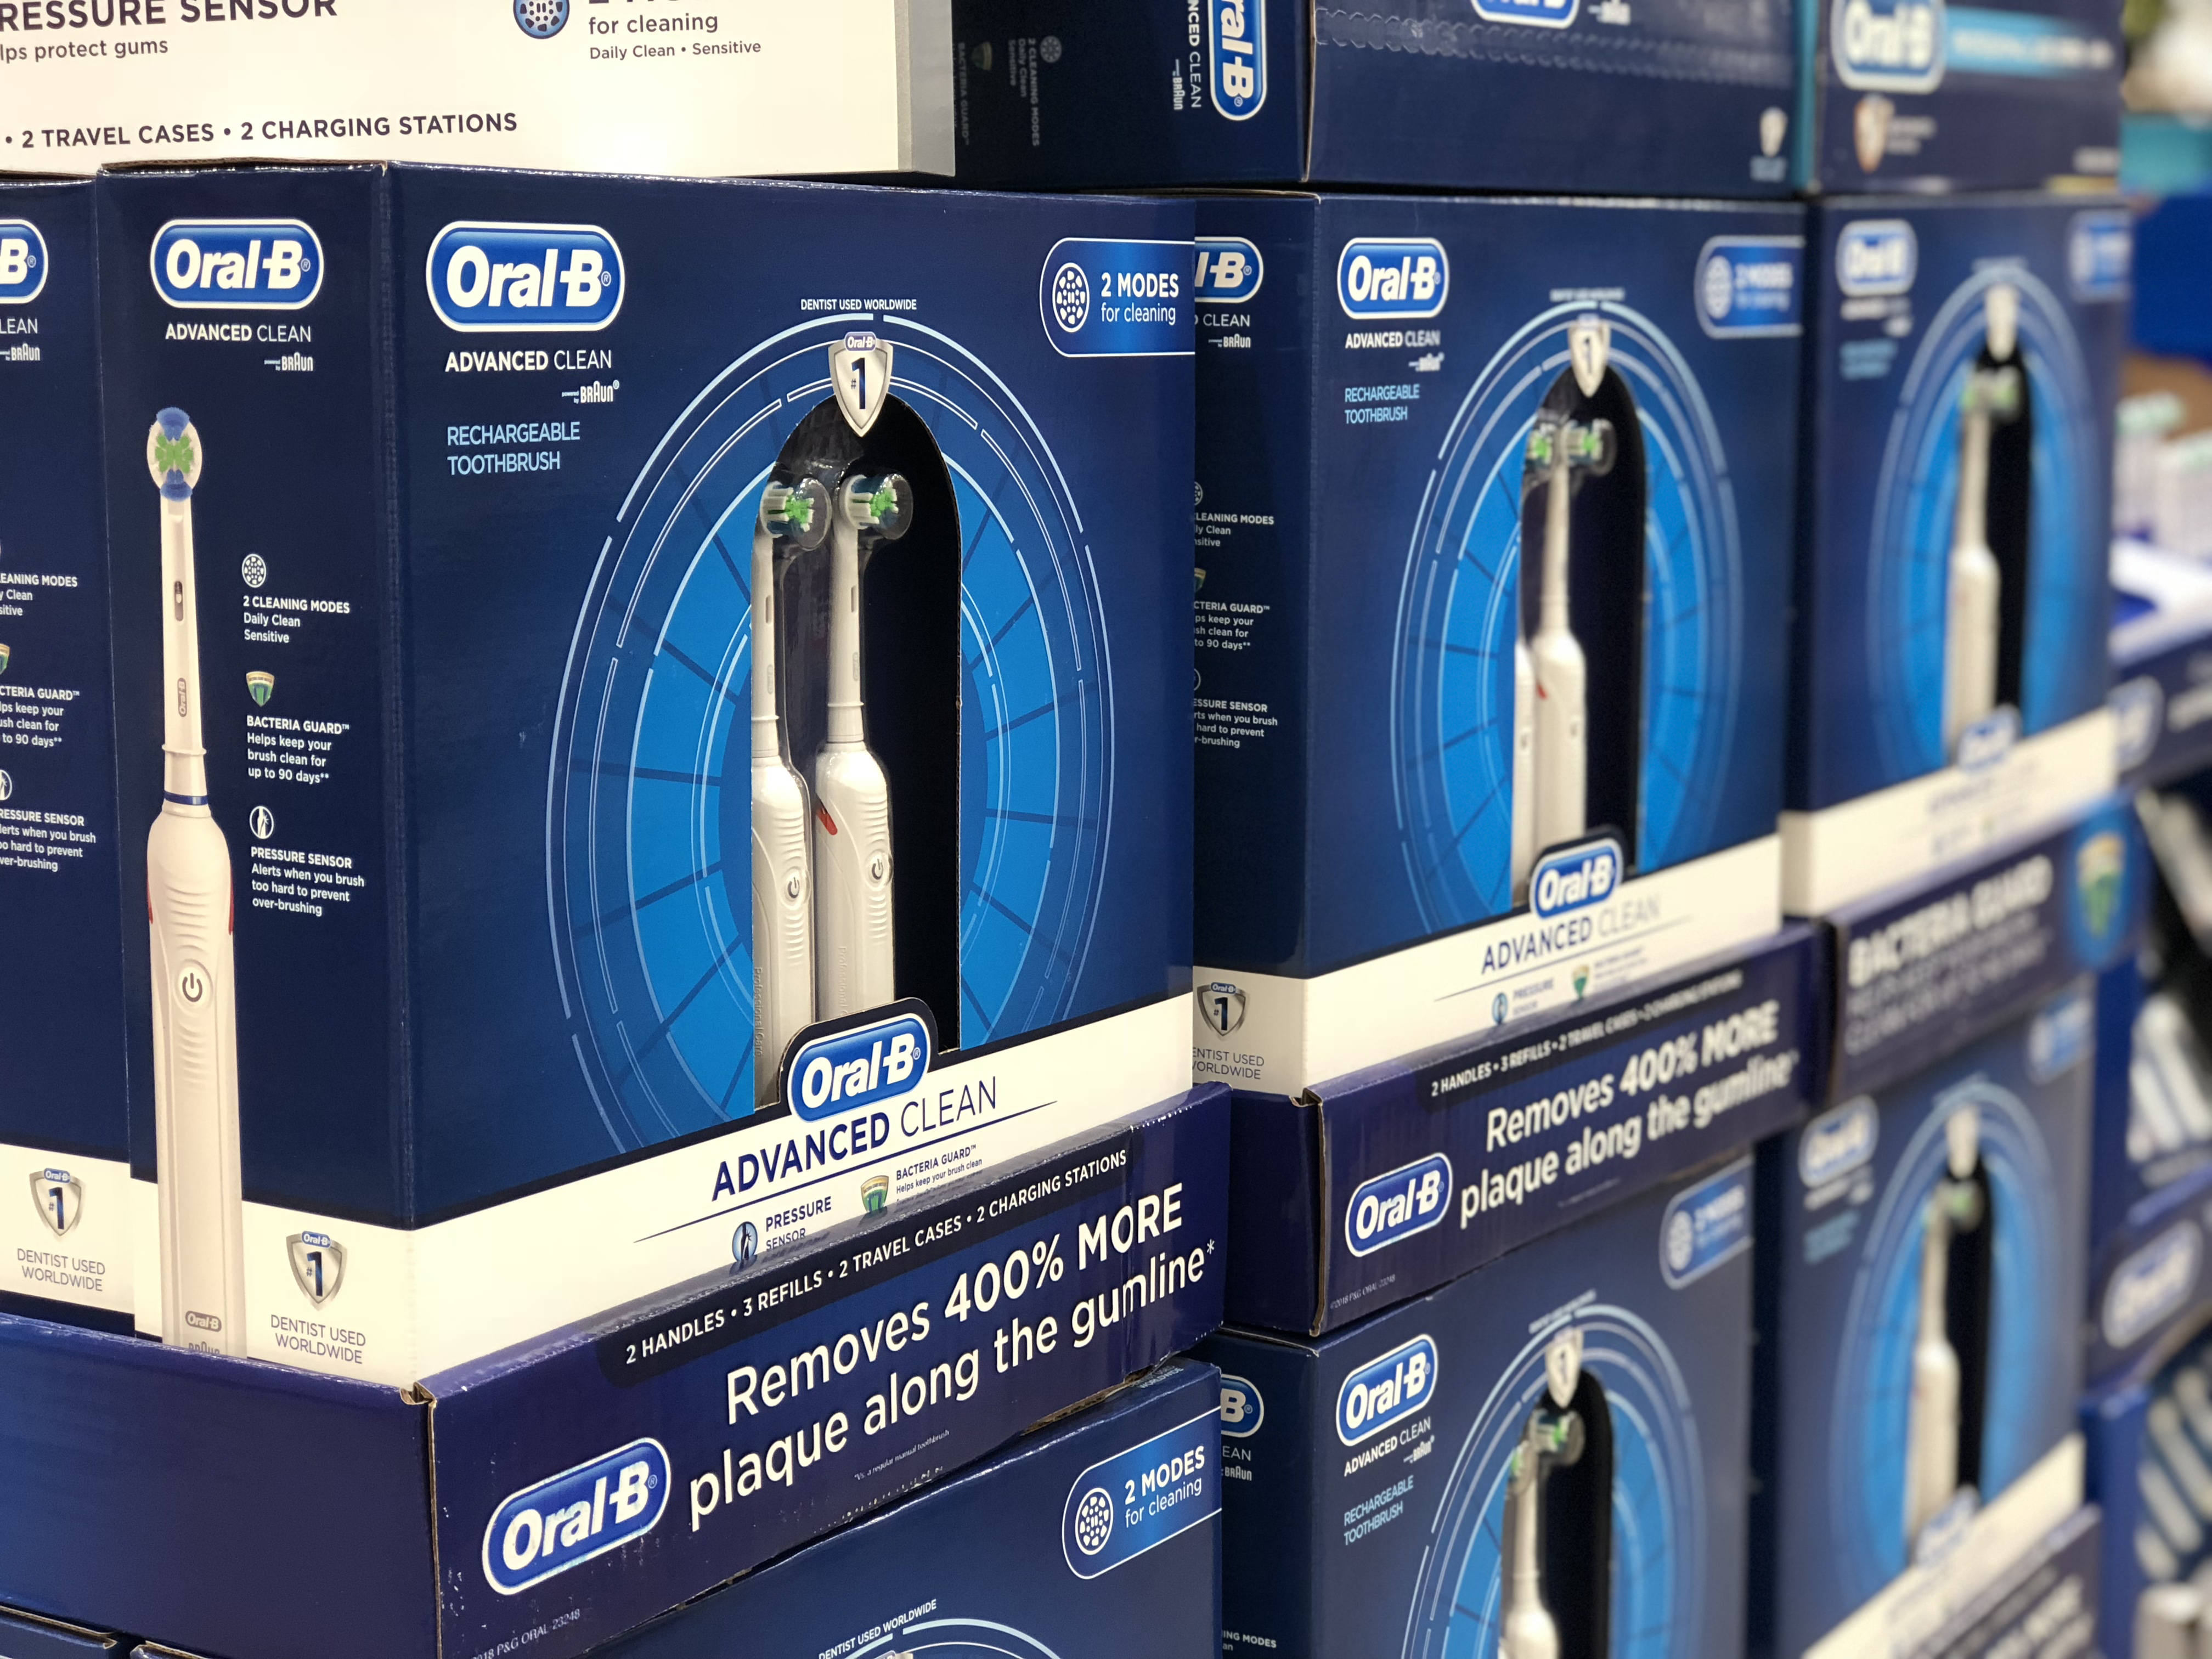 Oral-B 2pack toothbrushes set at Costco